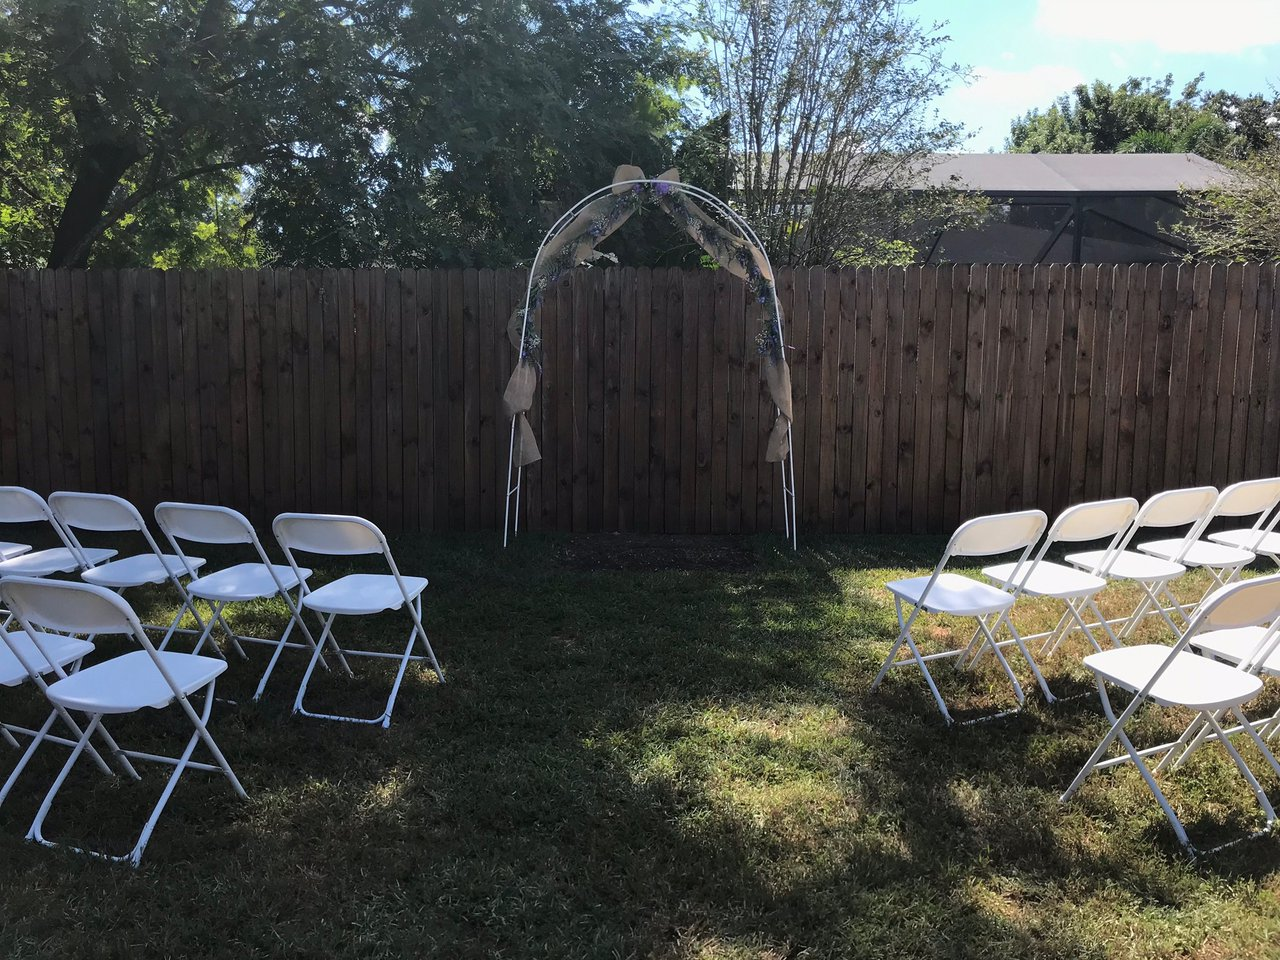 Simple Outdoor Wedding photo 82817889-AAD4-4710-9EAD-F1140FE94464.jpg